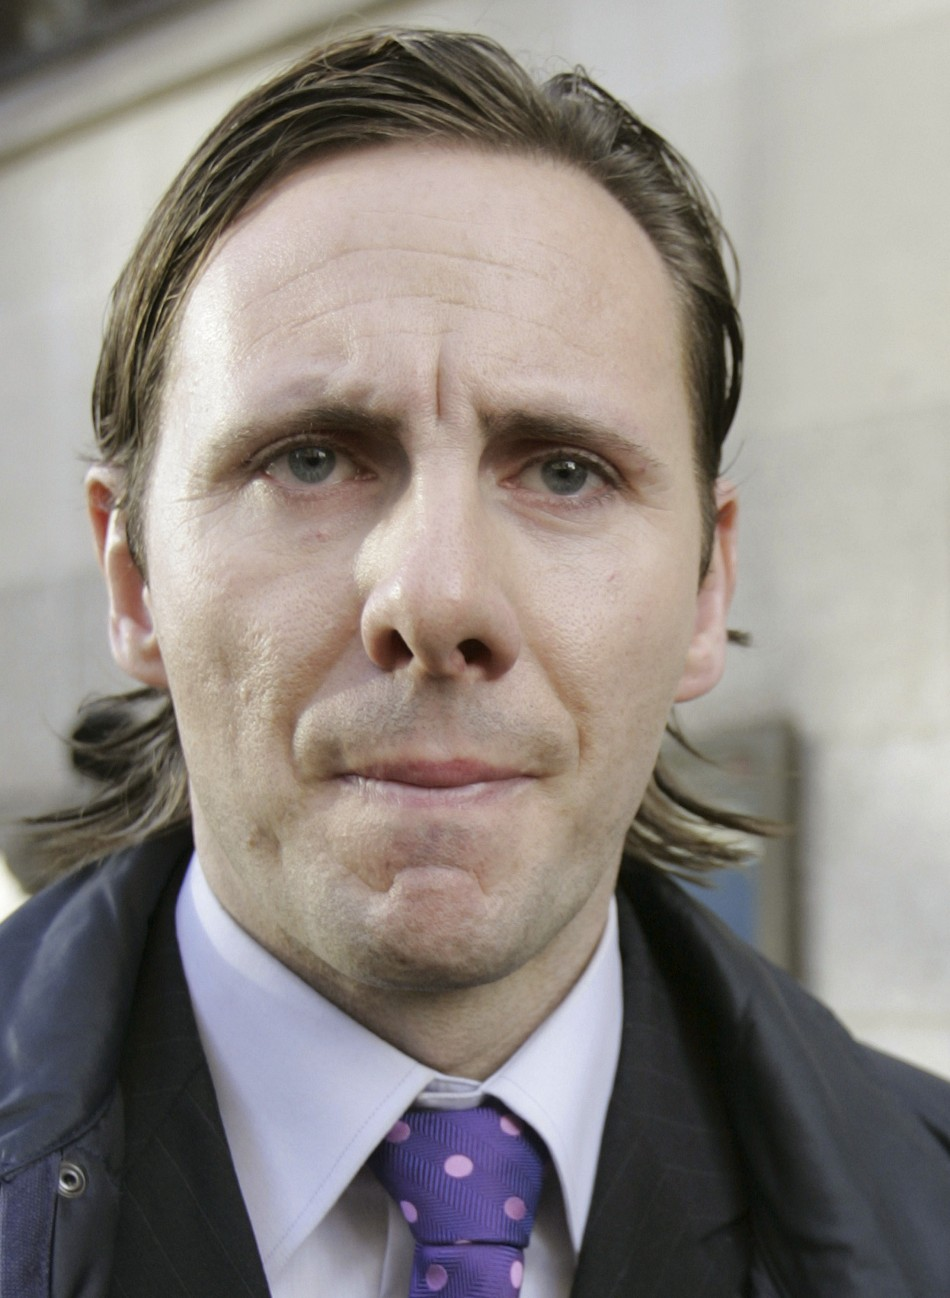 Private investigator Mulcaire leaves the Old Bailey court in central London